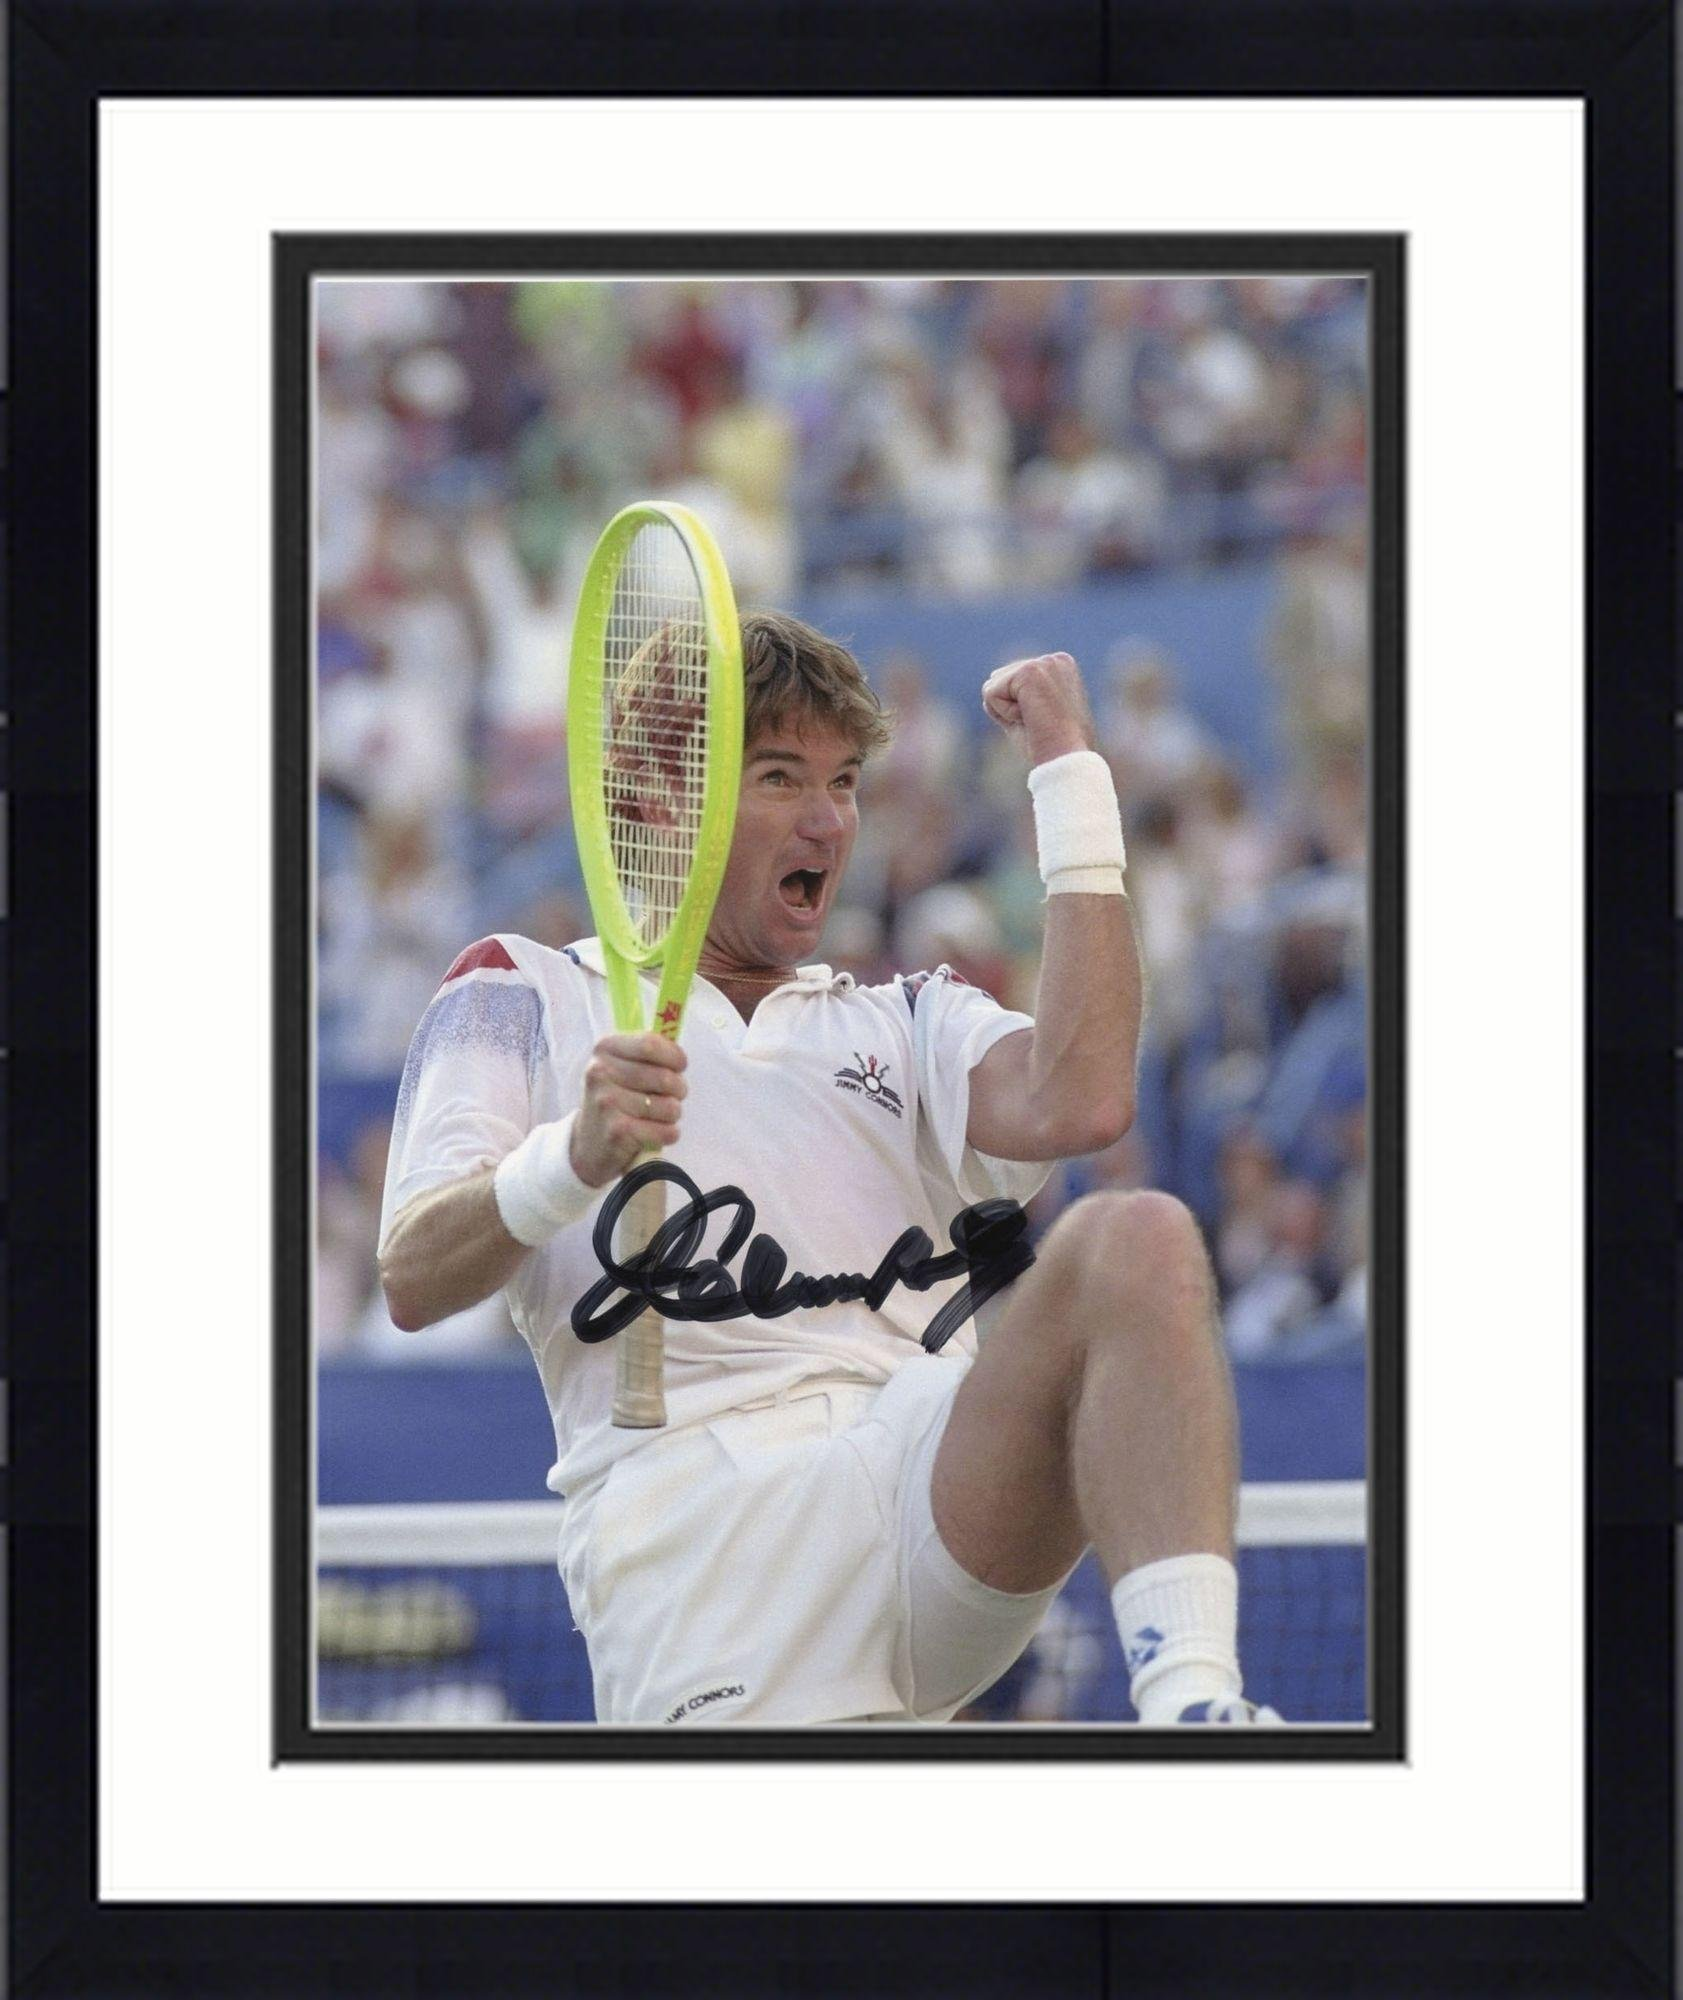 "Framed Jimmy Connors Autographed 8"" x 10"" Fist Pump Photograph Signed in Black Ink Fanatics Authentic Certified"